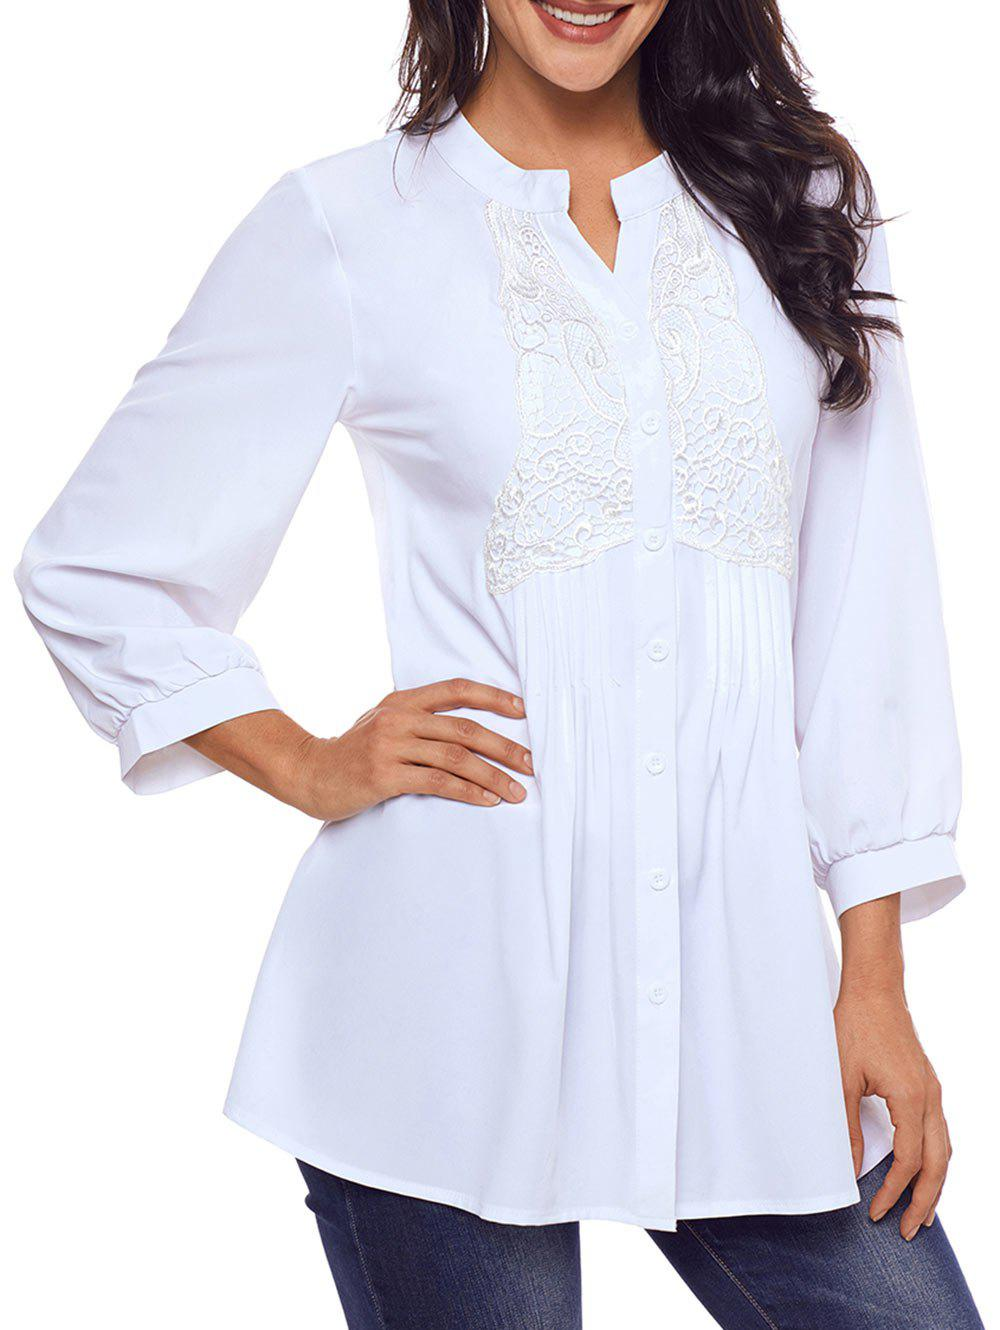 Store Split Neck Lace Panel Pintuck Tunic Blouse